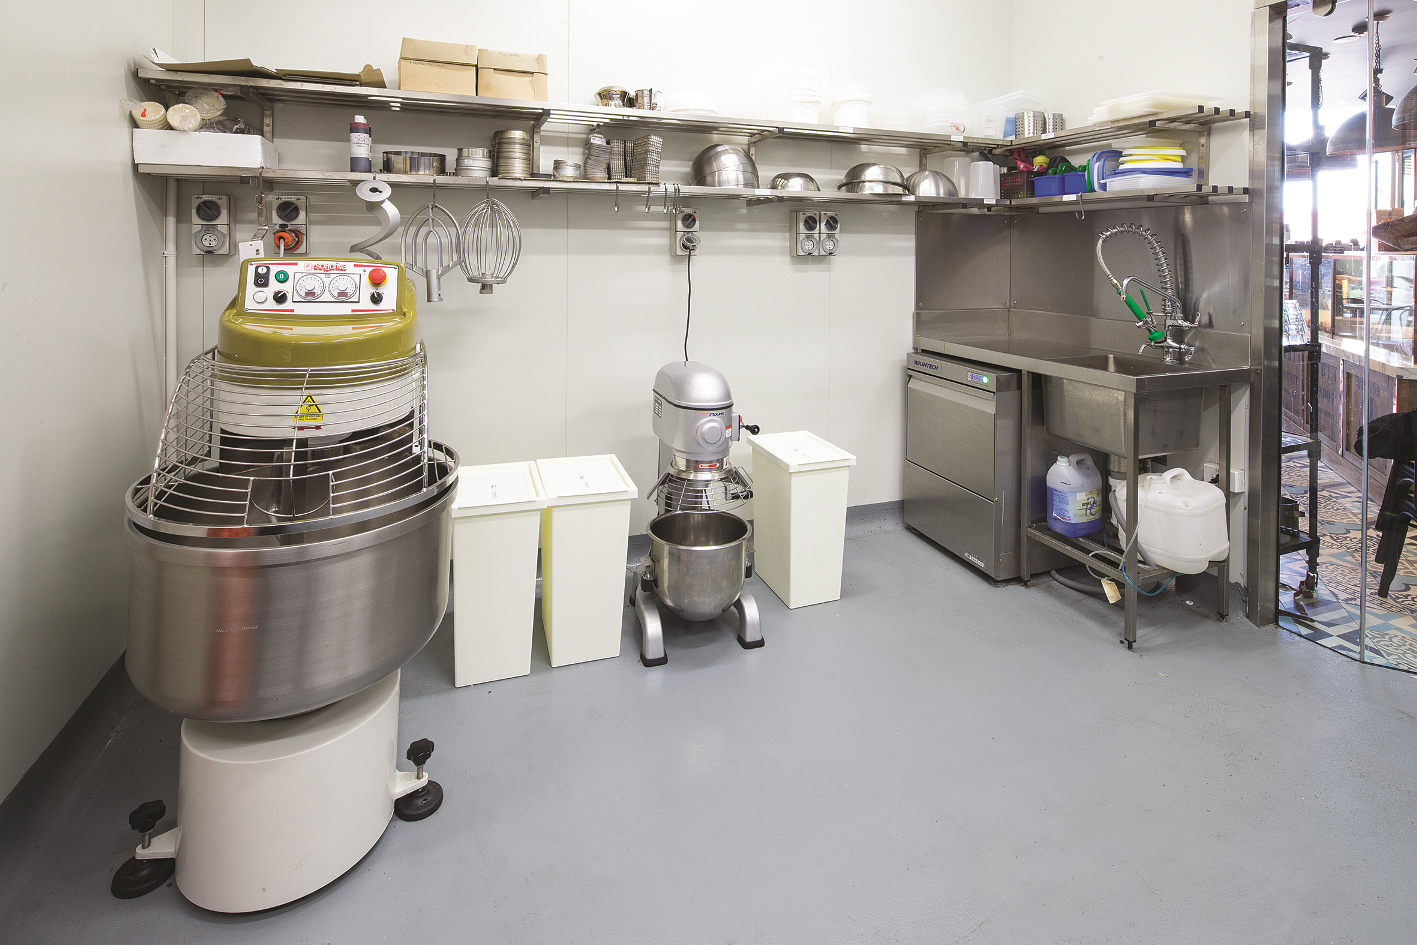 The Frelingos installed a wide range of Moffat equipment including a Tagliavini 9 Tray Deck Oven, Sottoriva Twist 60 Spiral Mixer and much more.